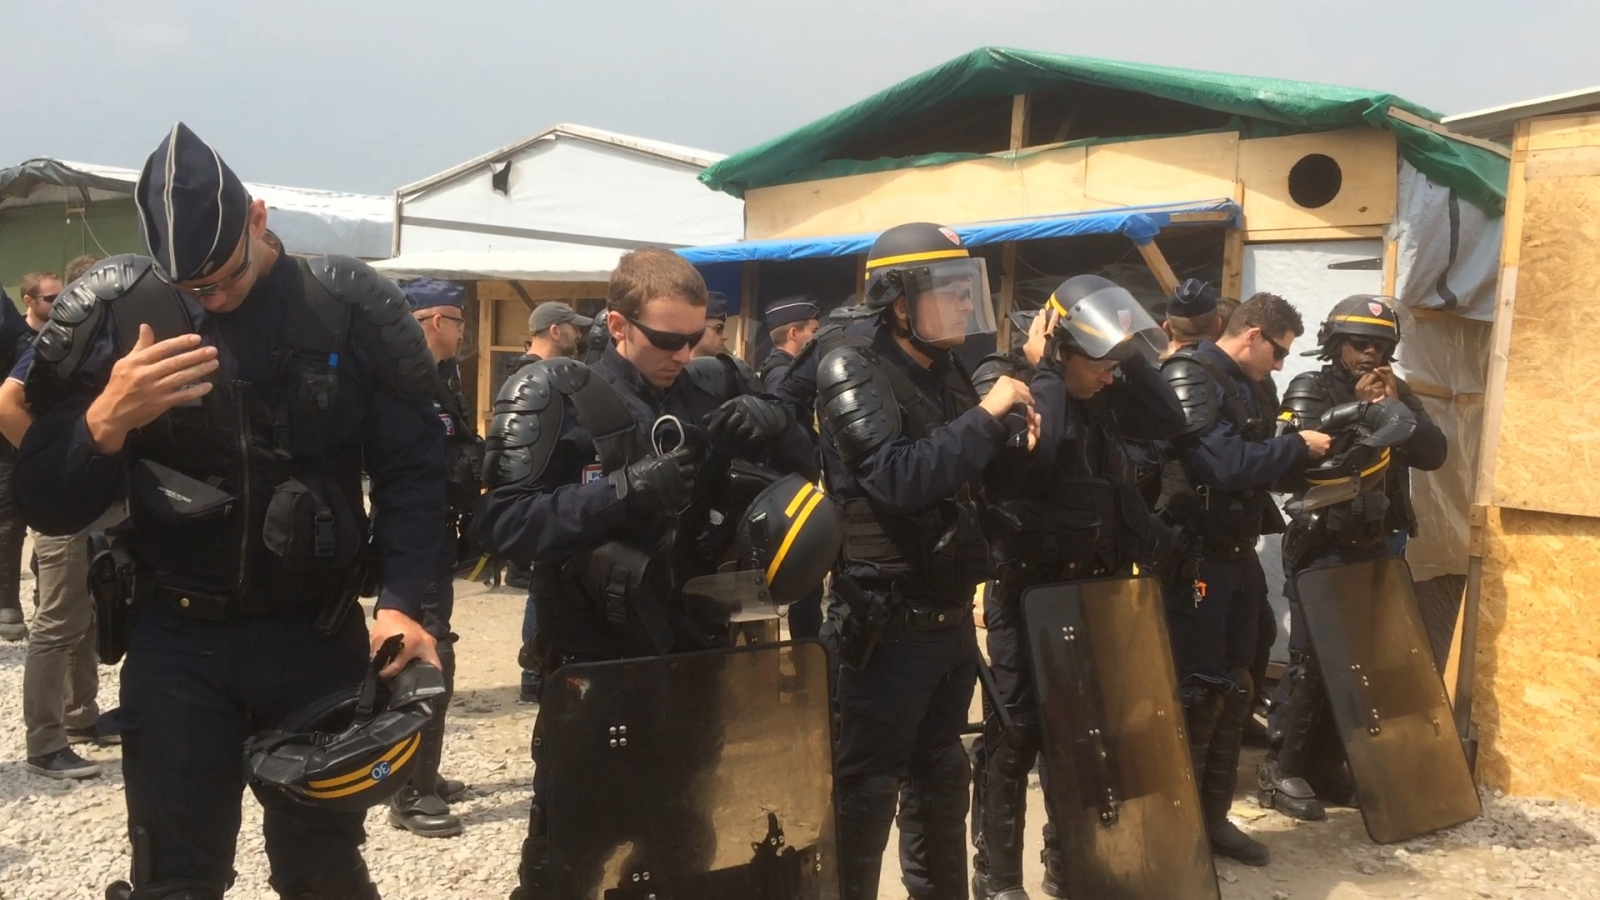 French police raid businesses in Calais jungle